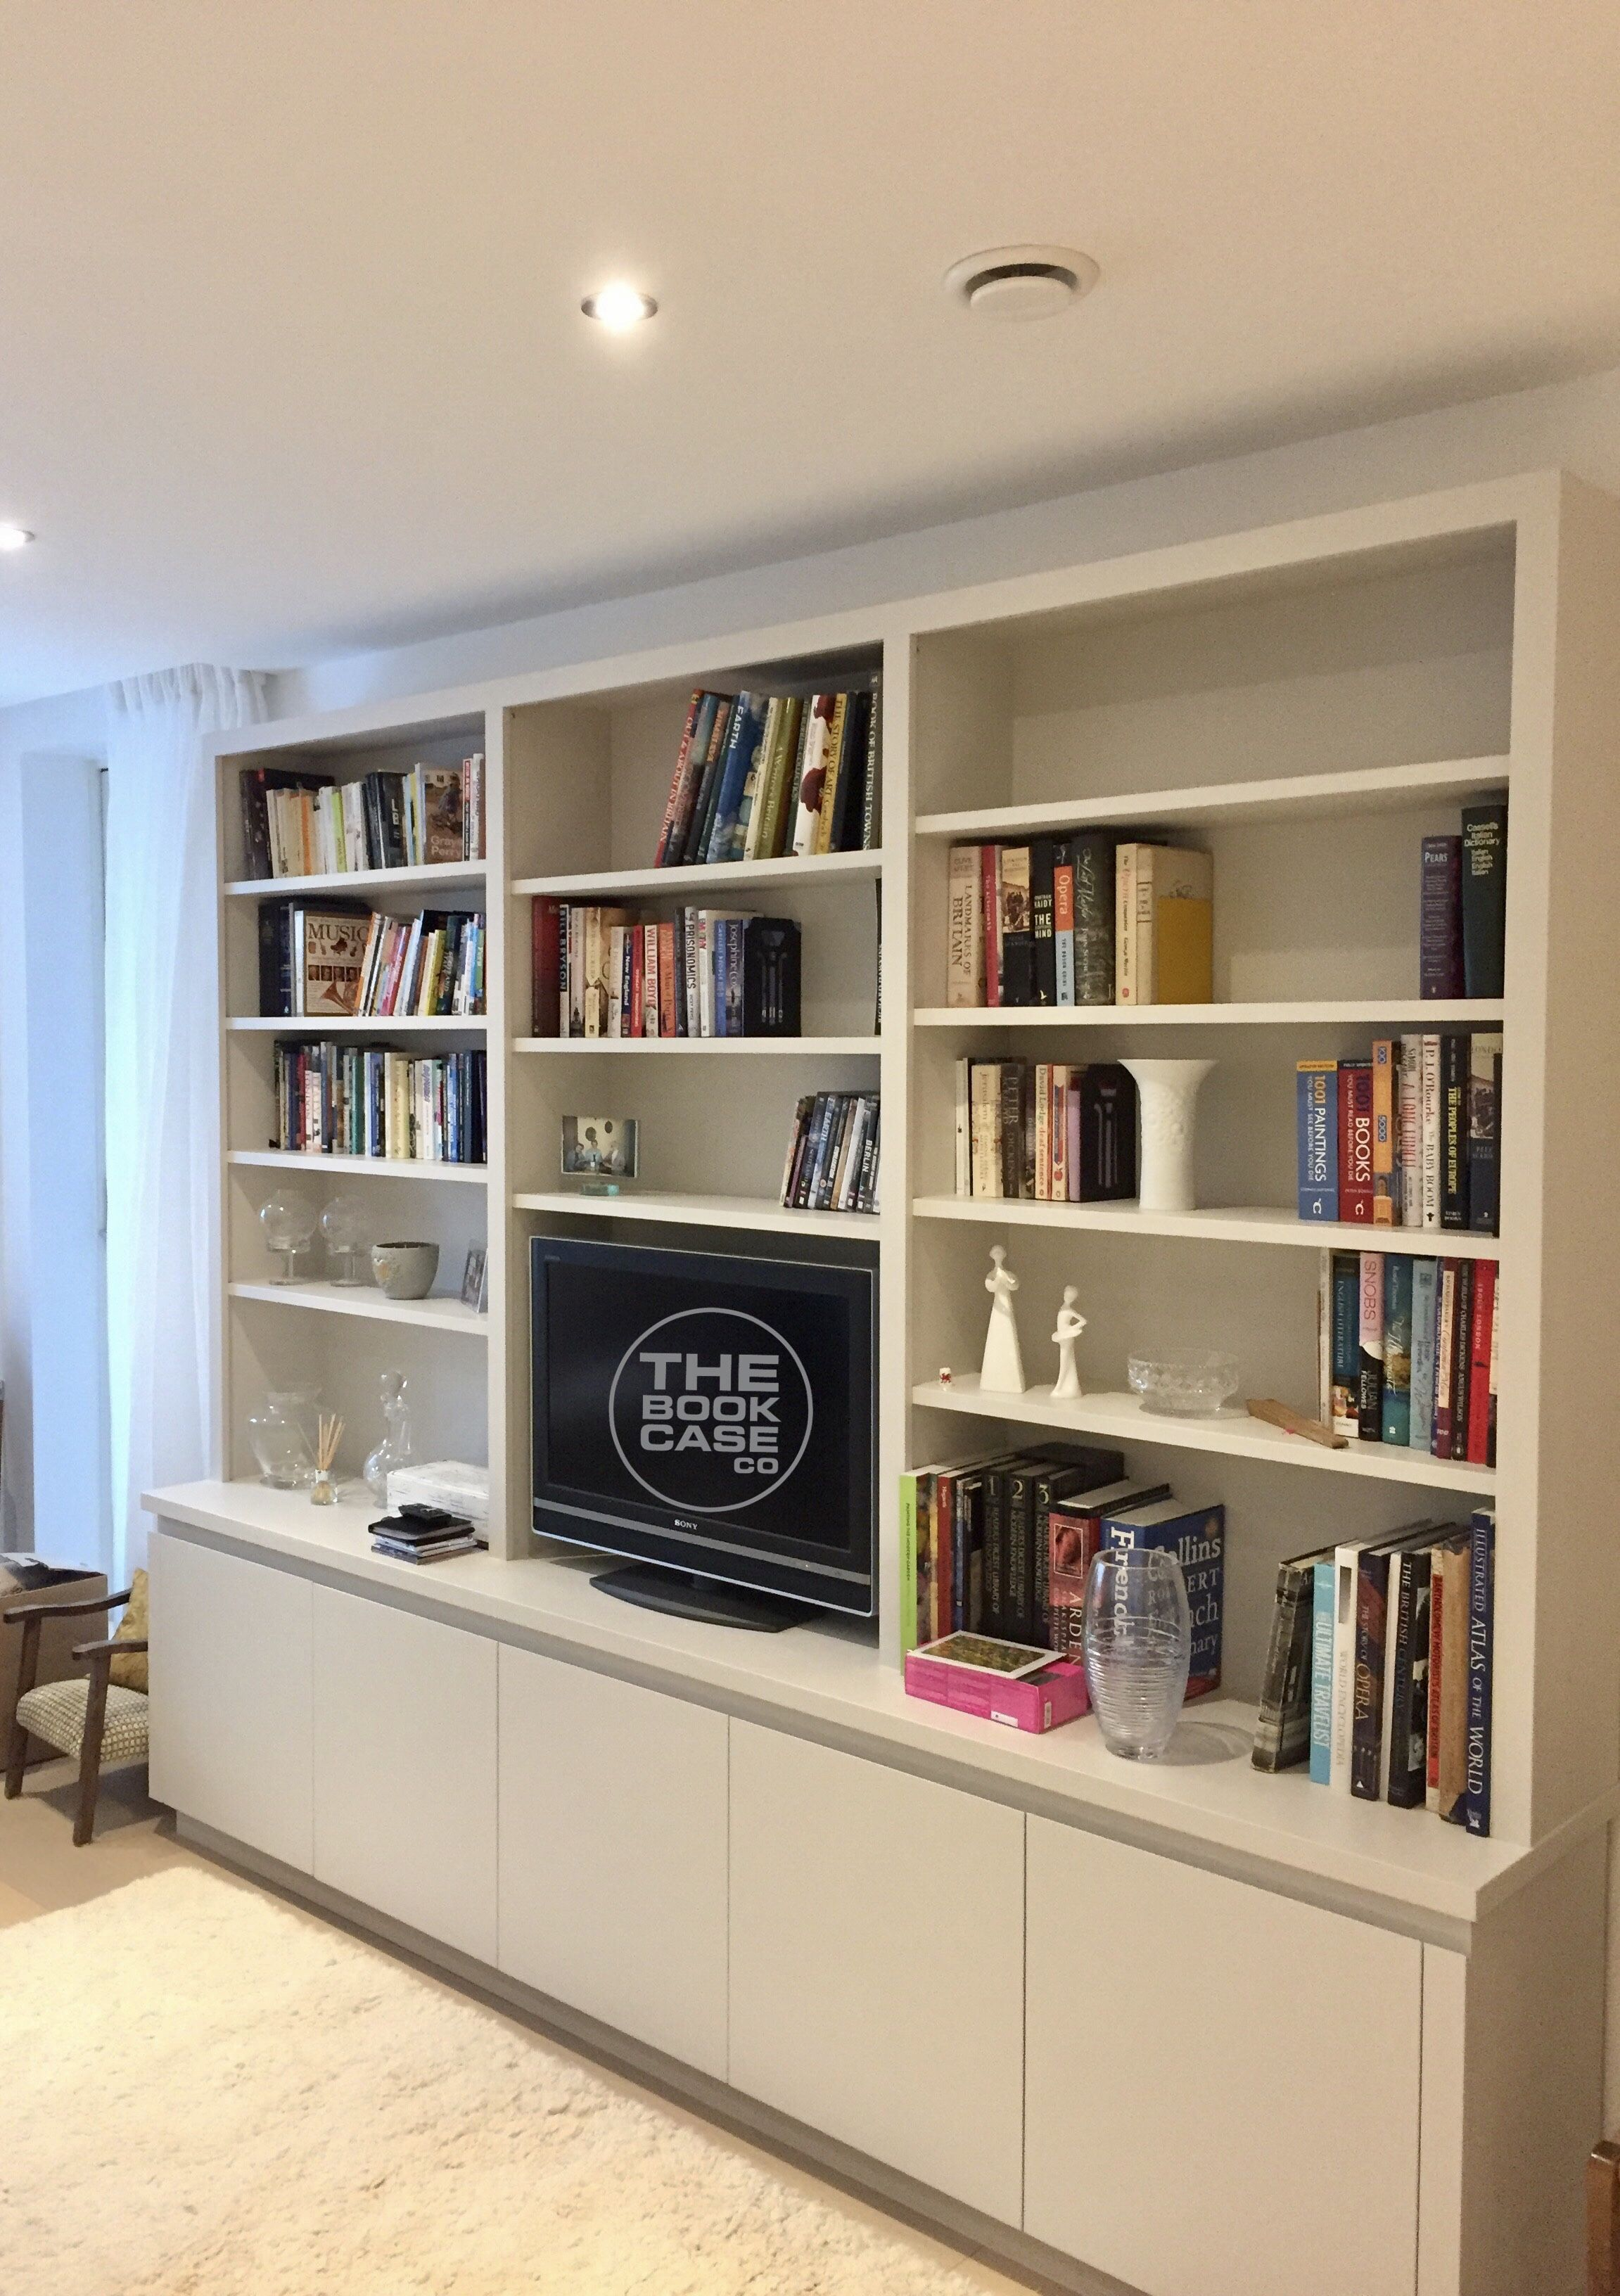 Media Furniture In 2021 Wall Cabinets Living Room Shelving Units Living Room Living Room Shelves